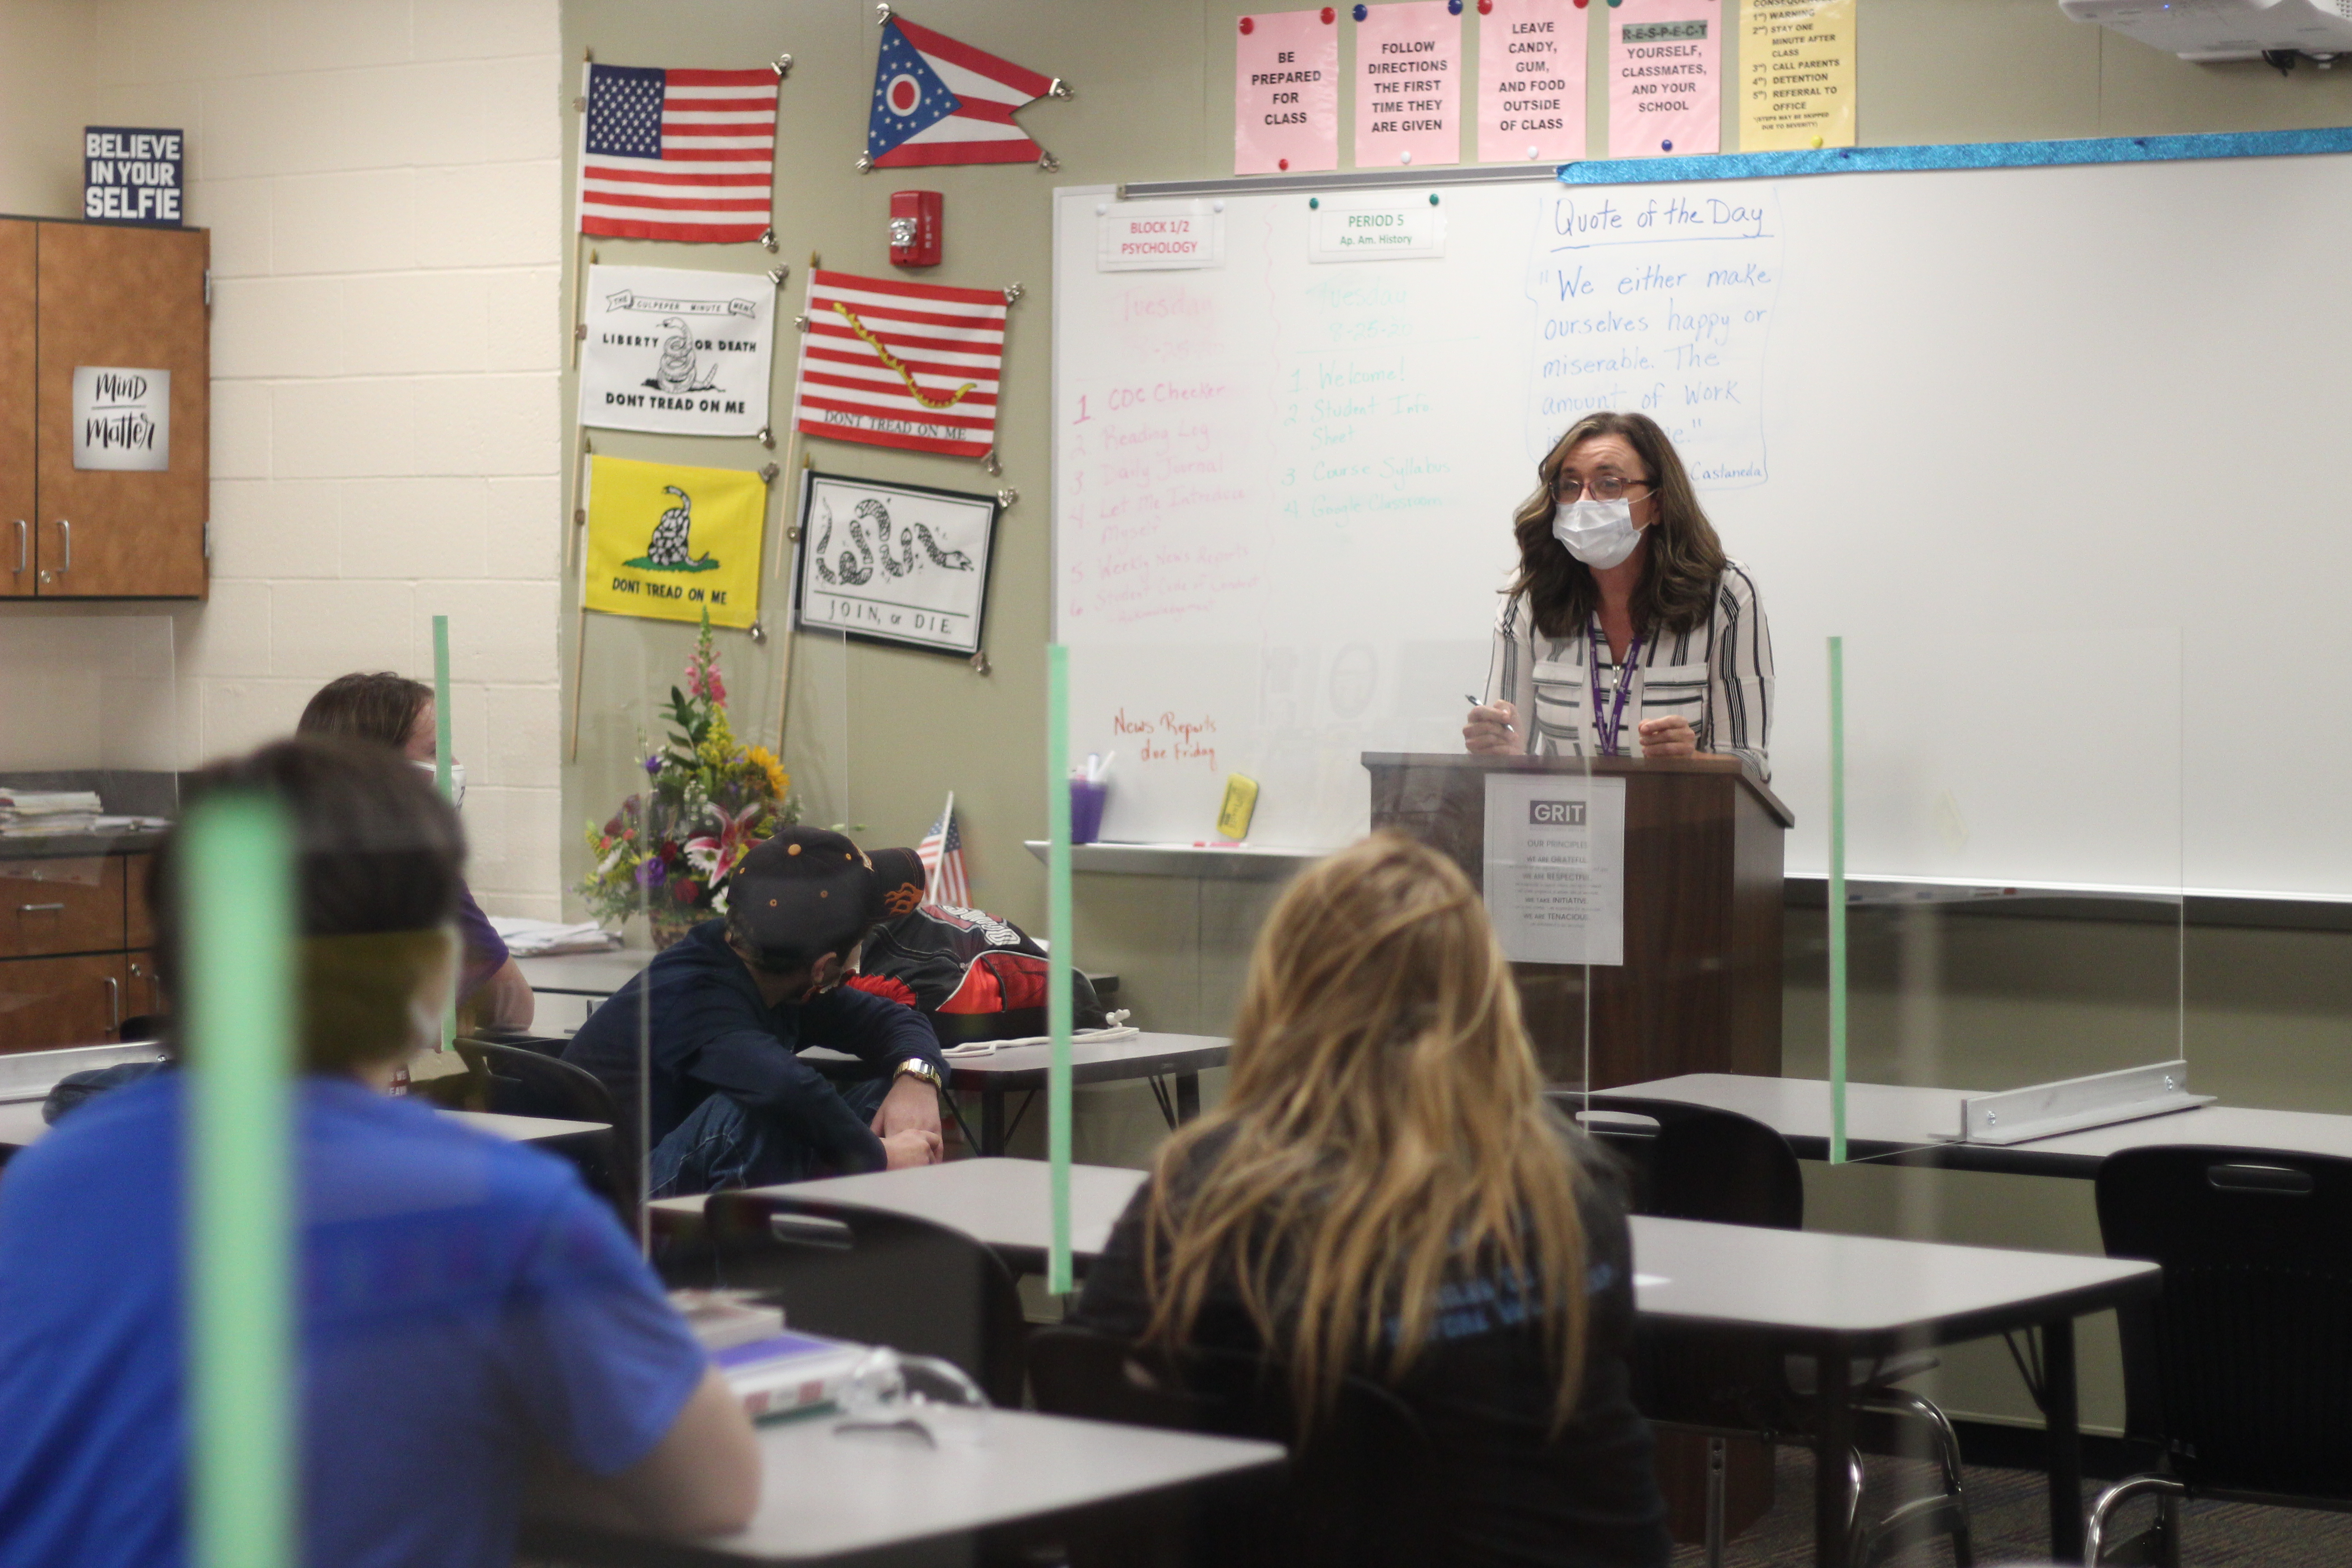 A female teacher in a white and gray striped shirt leans on a podium. She is wearing a white mask. Students are seated behind desks with plexiglass dividers.